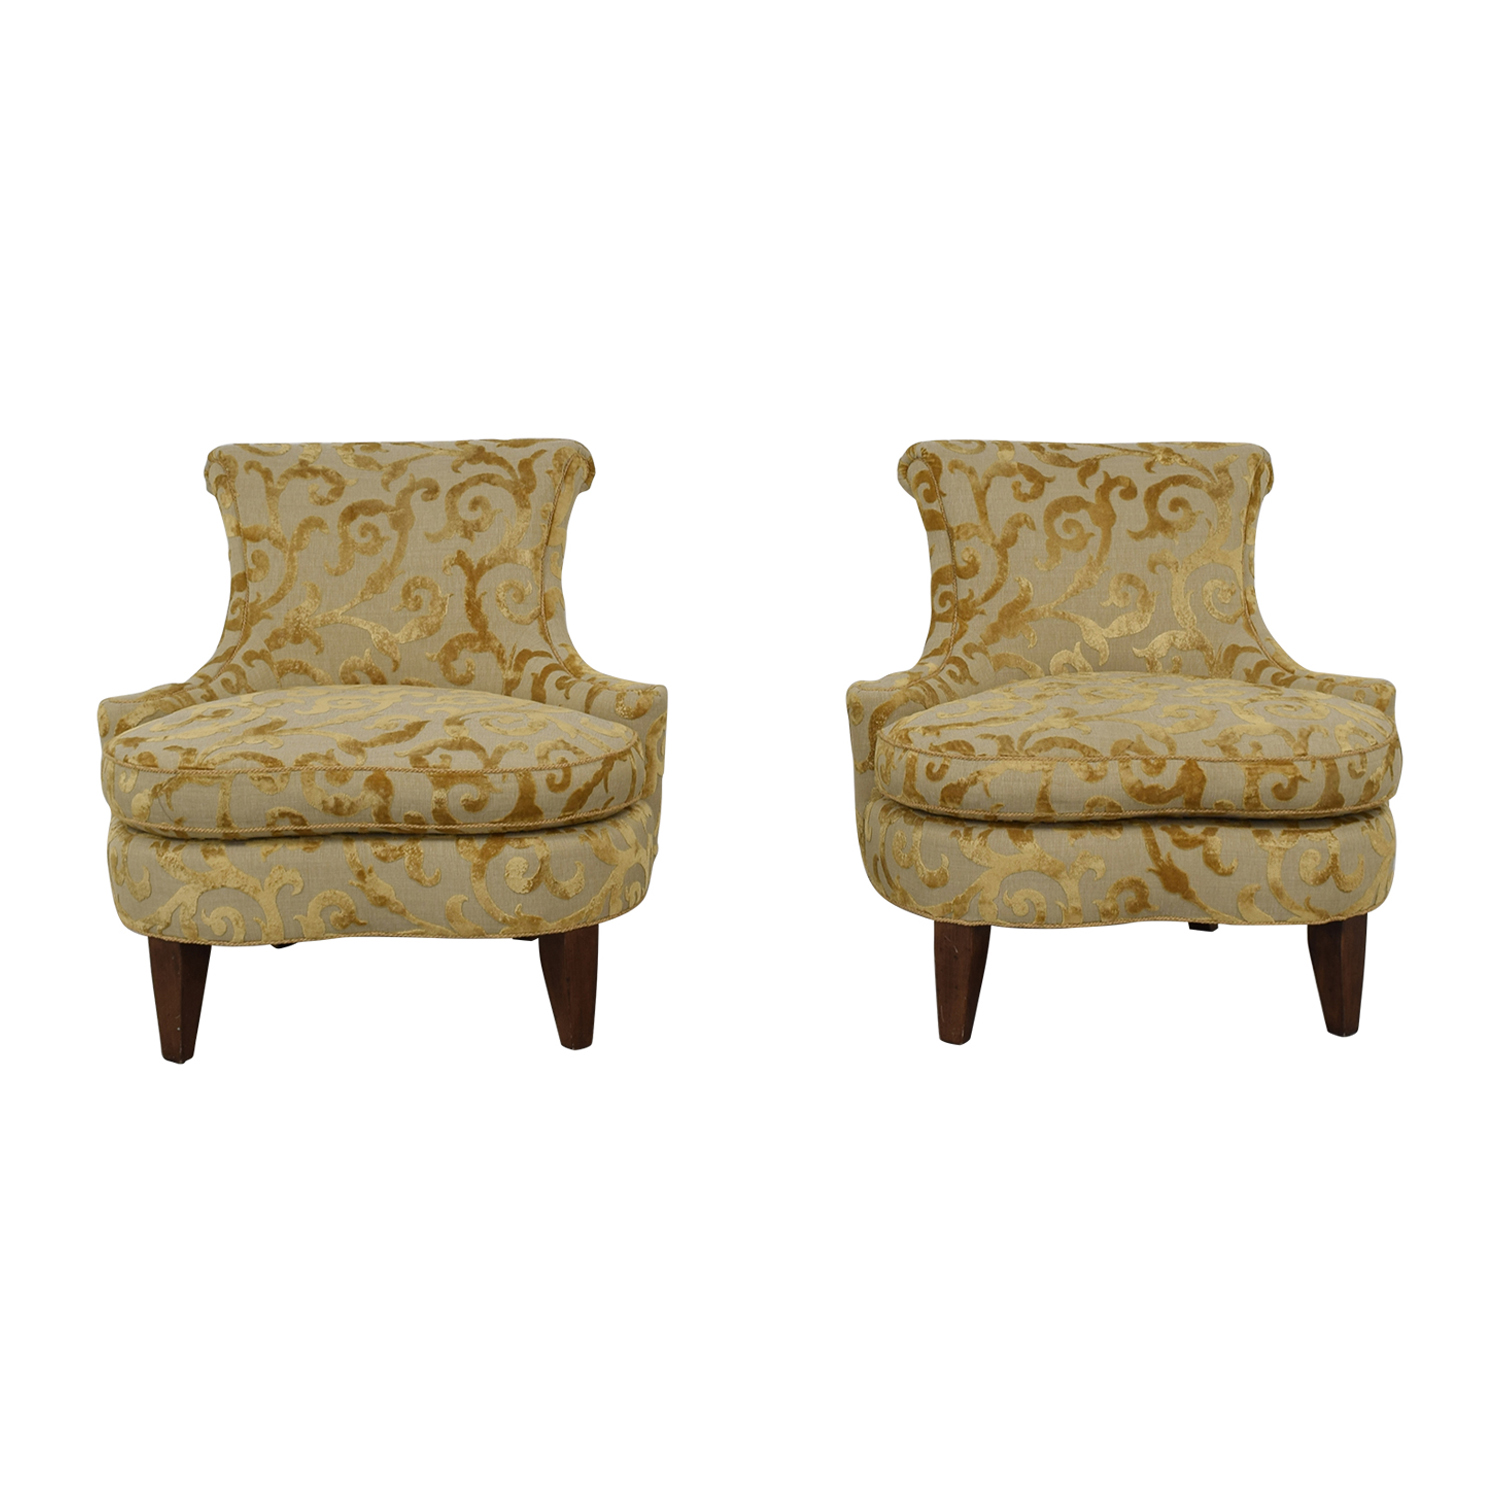 Accent Chairs.86 Off Bentley Churchill Bentley Churchill Cream And Gold Accent Chairs Chairs